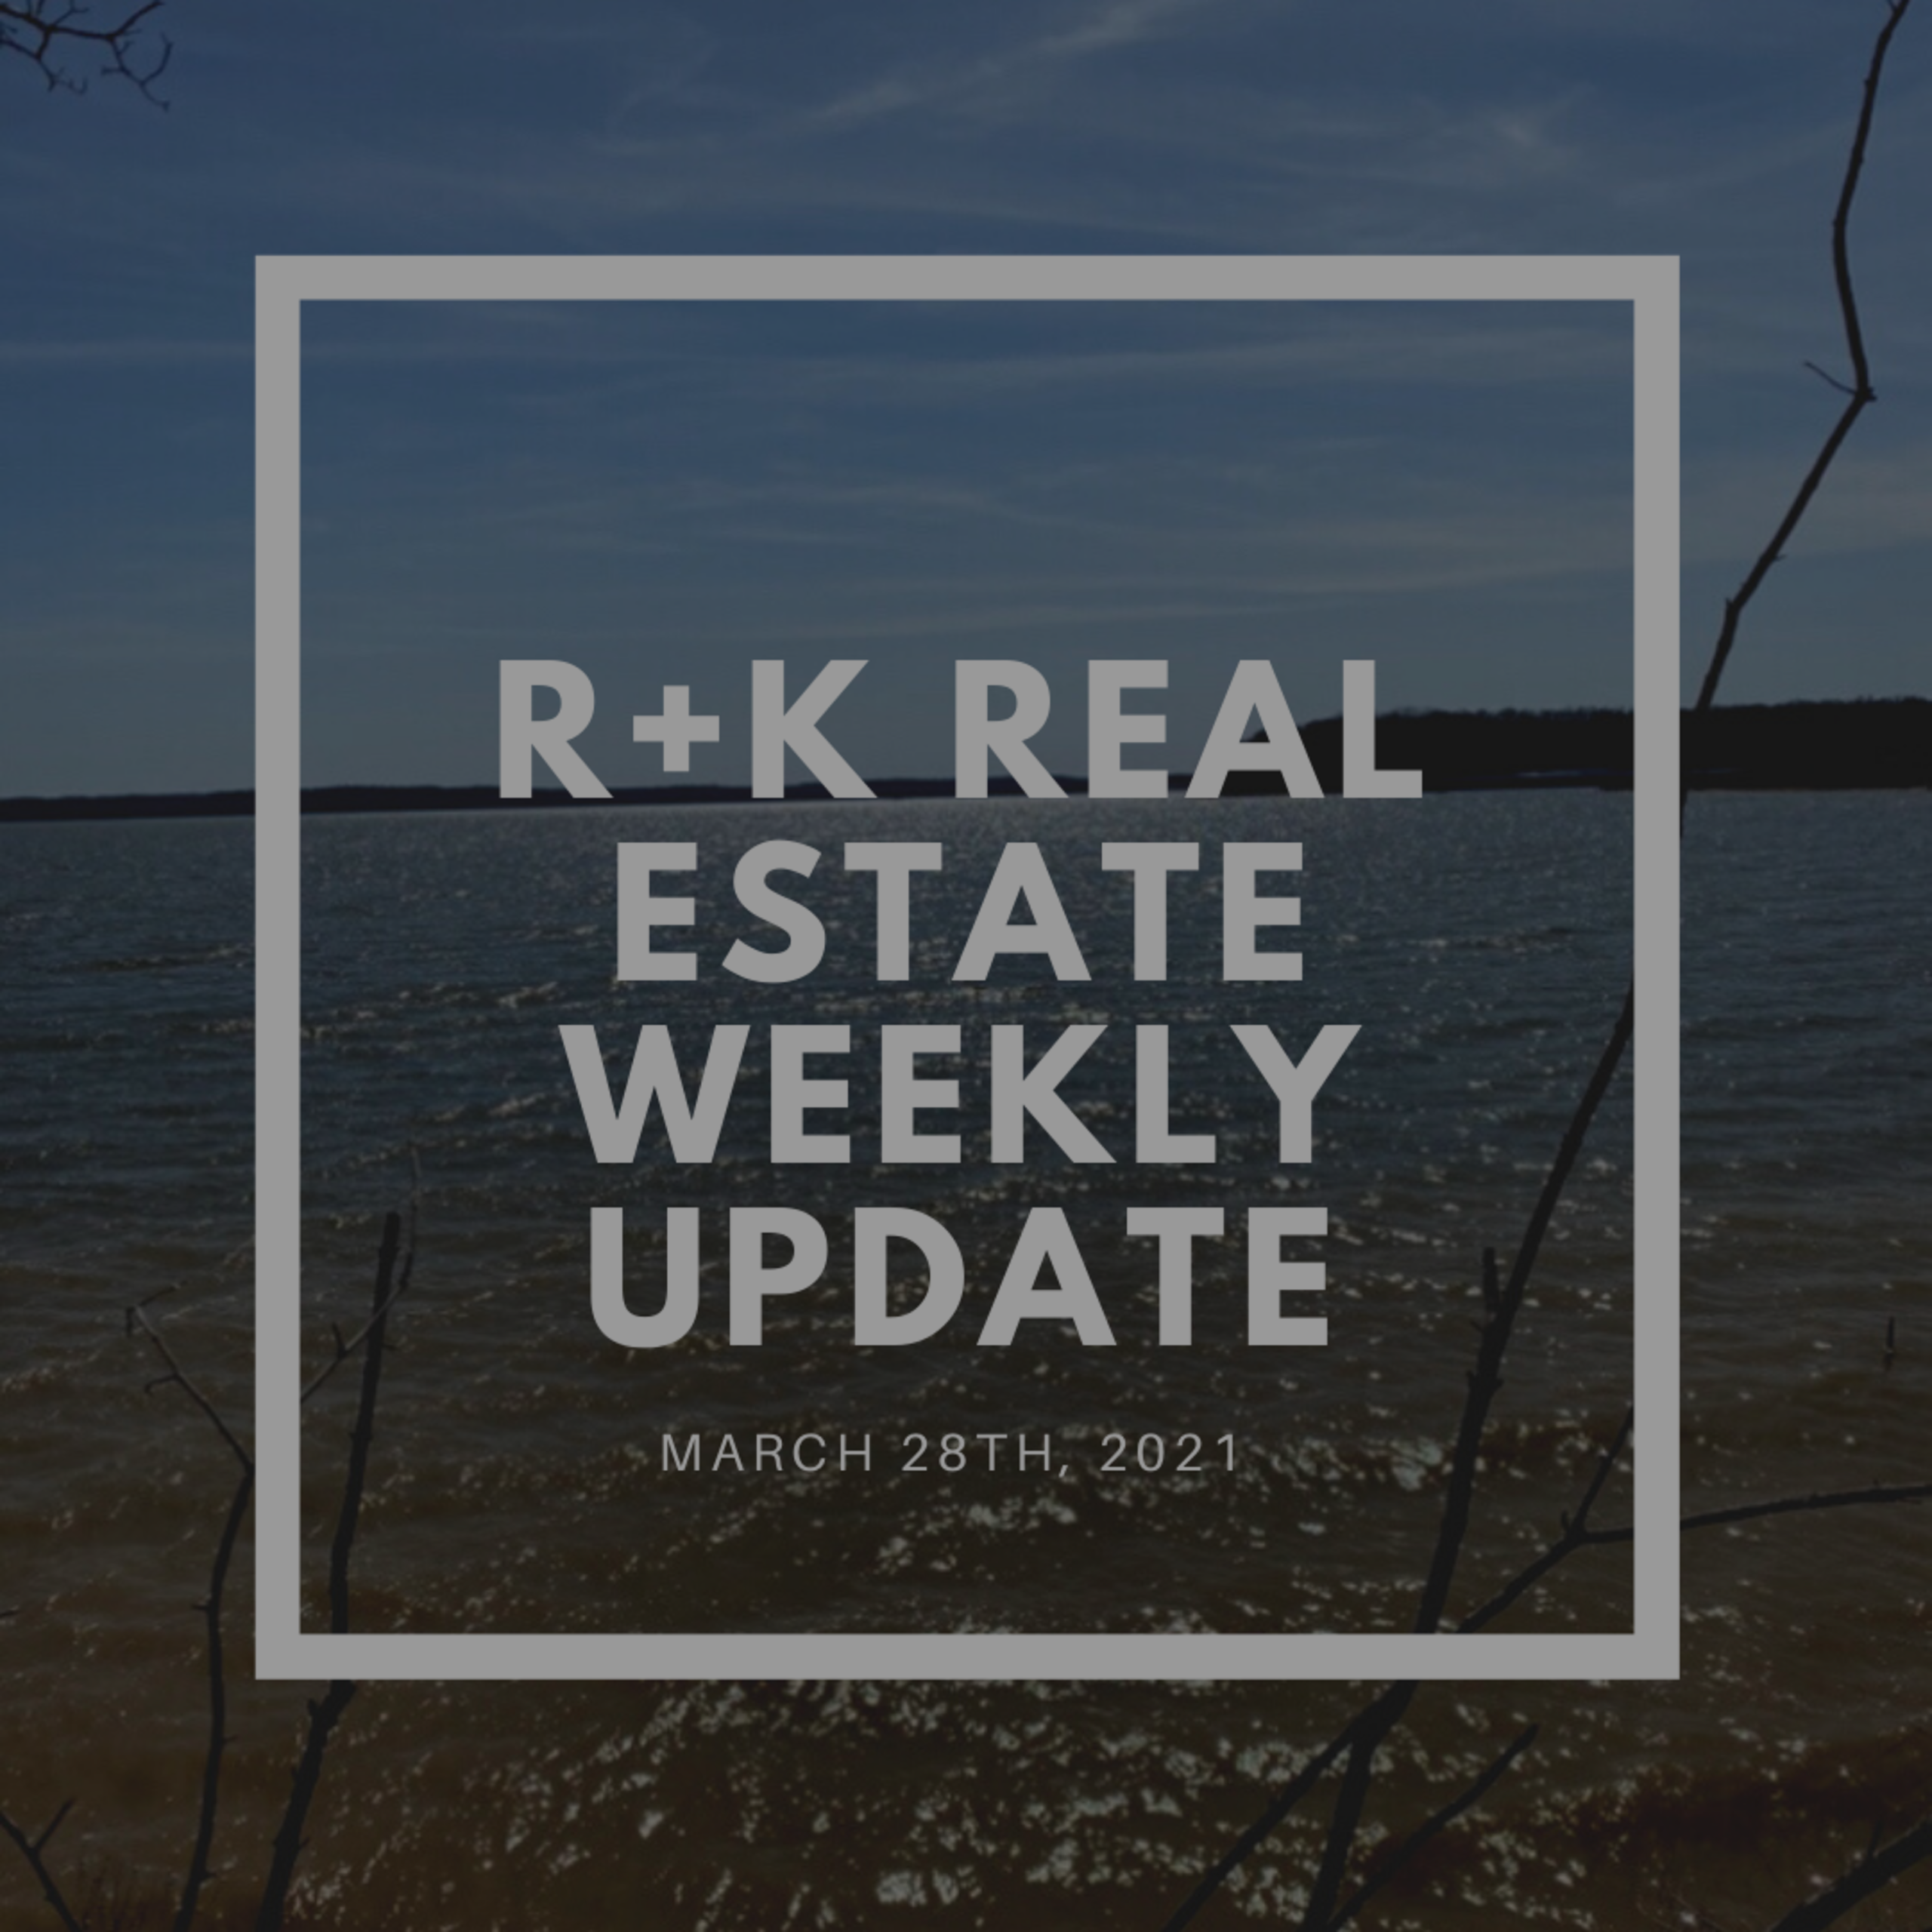 03/28/21 This week with R+K…